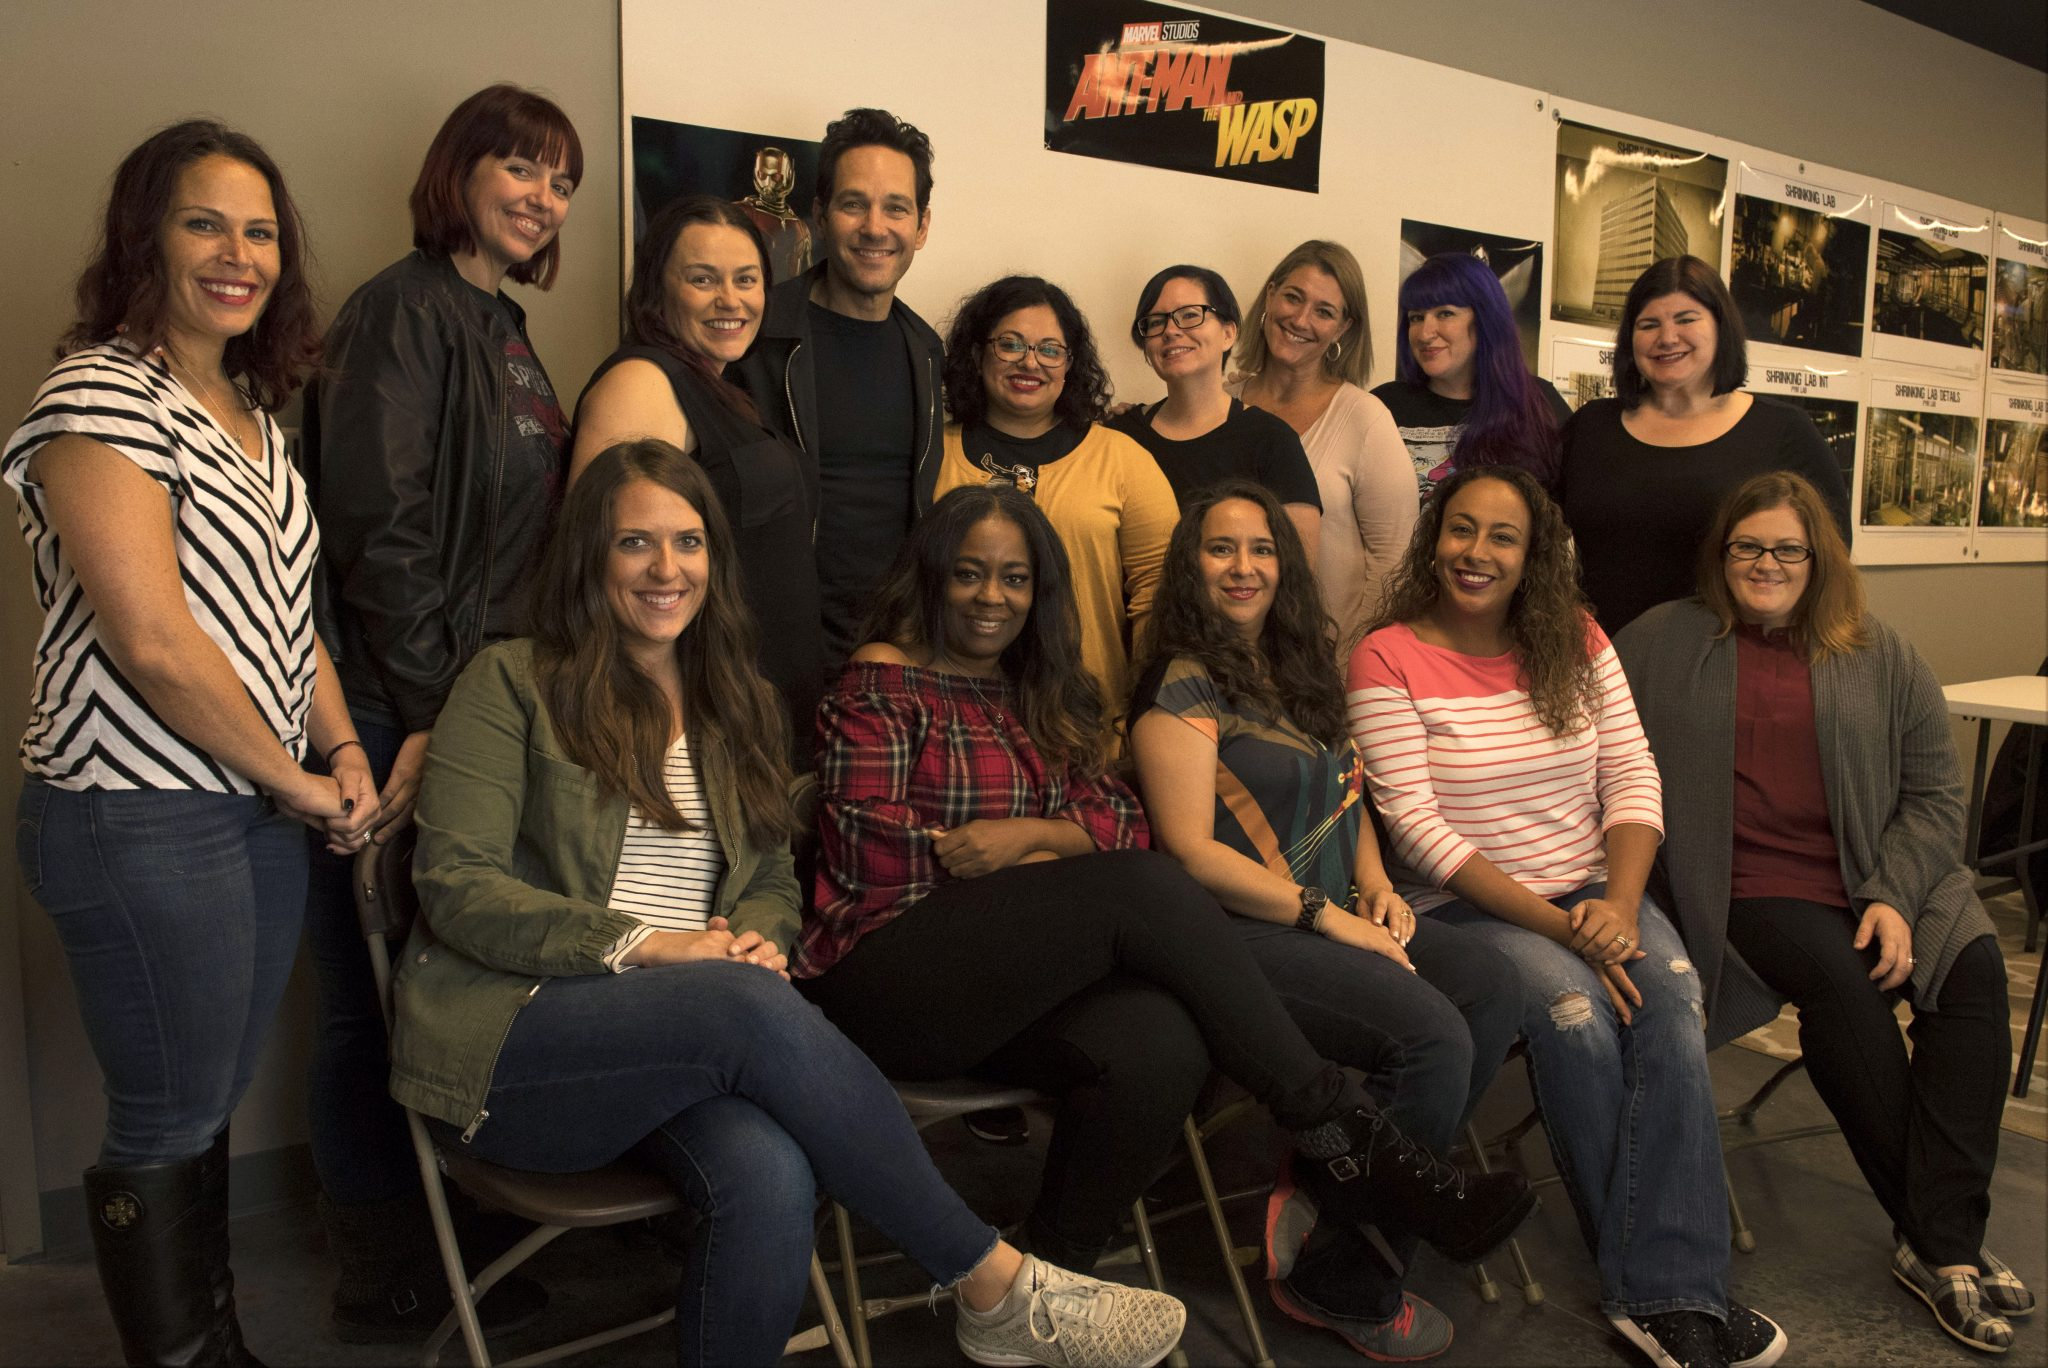 One On One With Actor Paul Rudd From Ant-Man And The Wasp